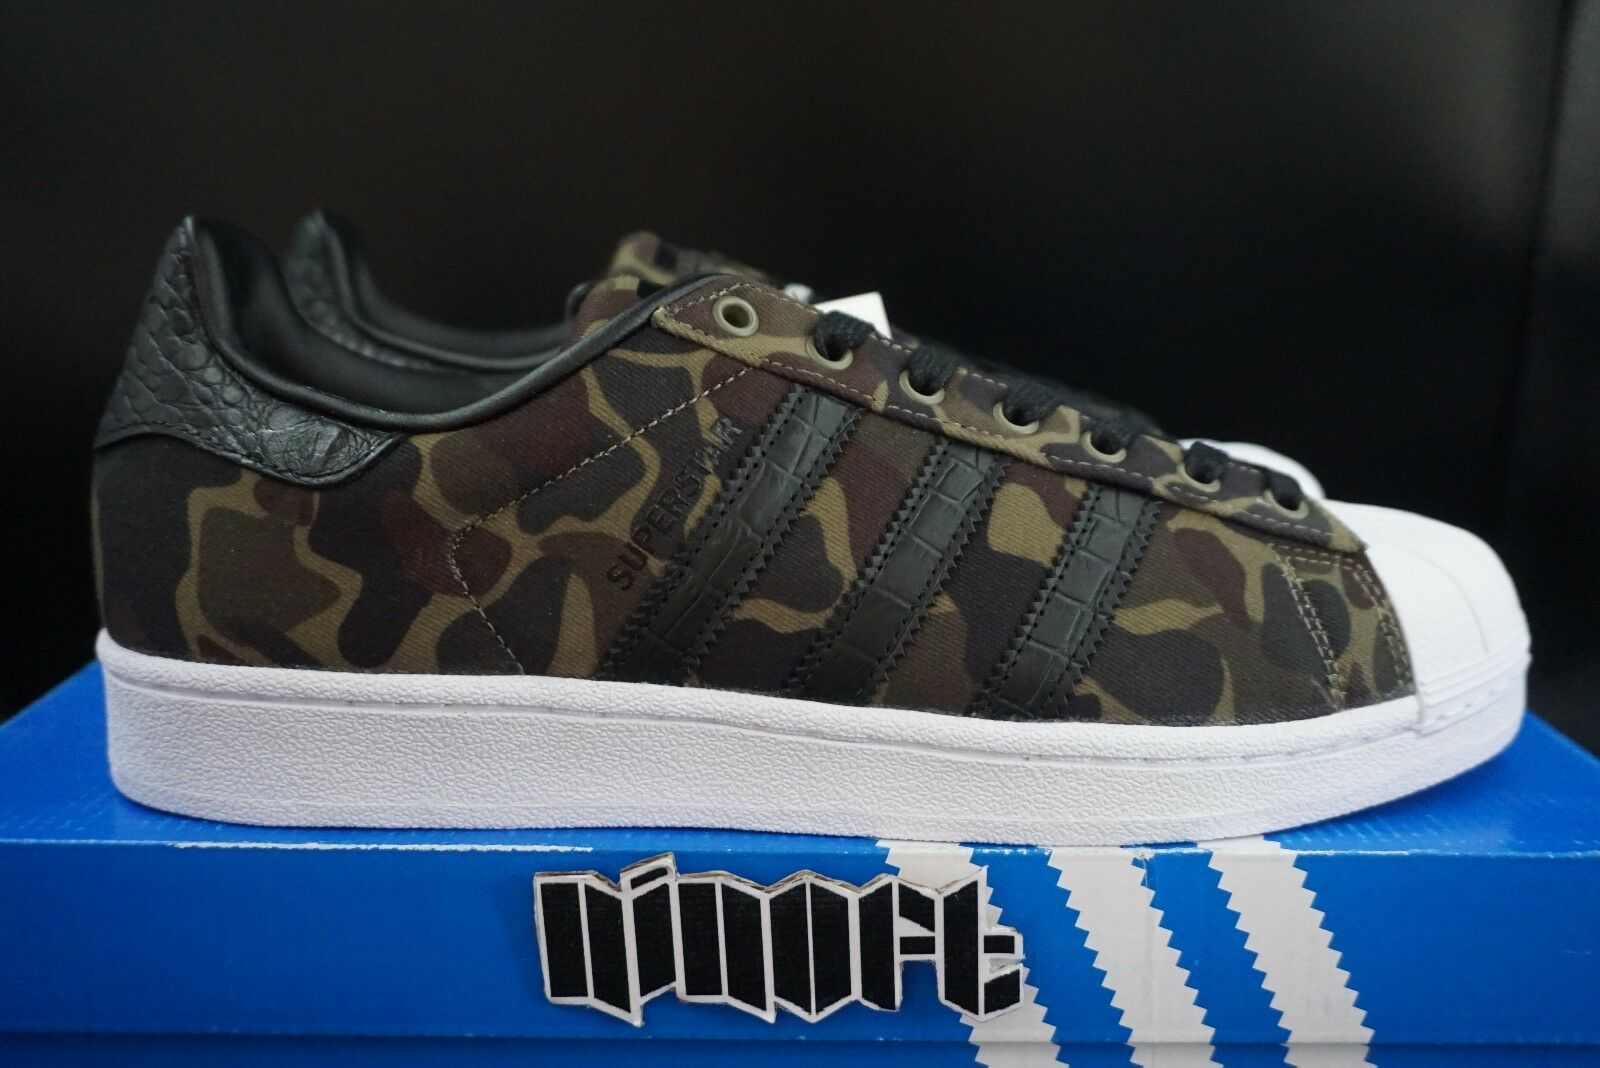 Adidas Originals Superstar Camo BB2774 canvas military